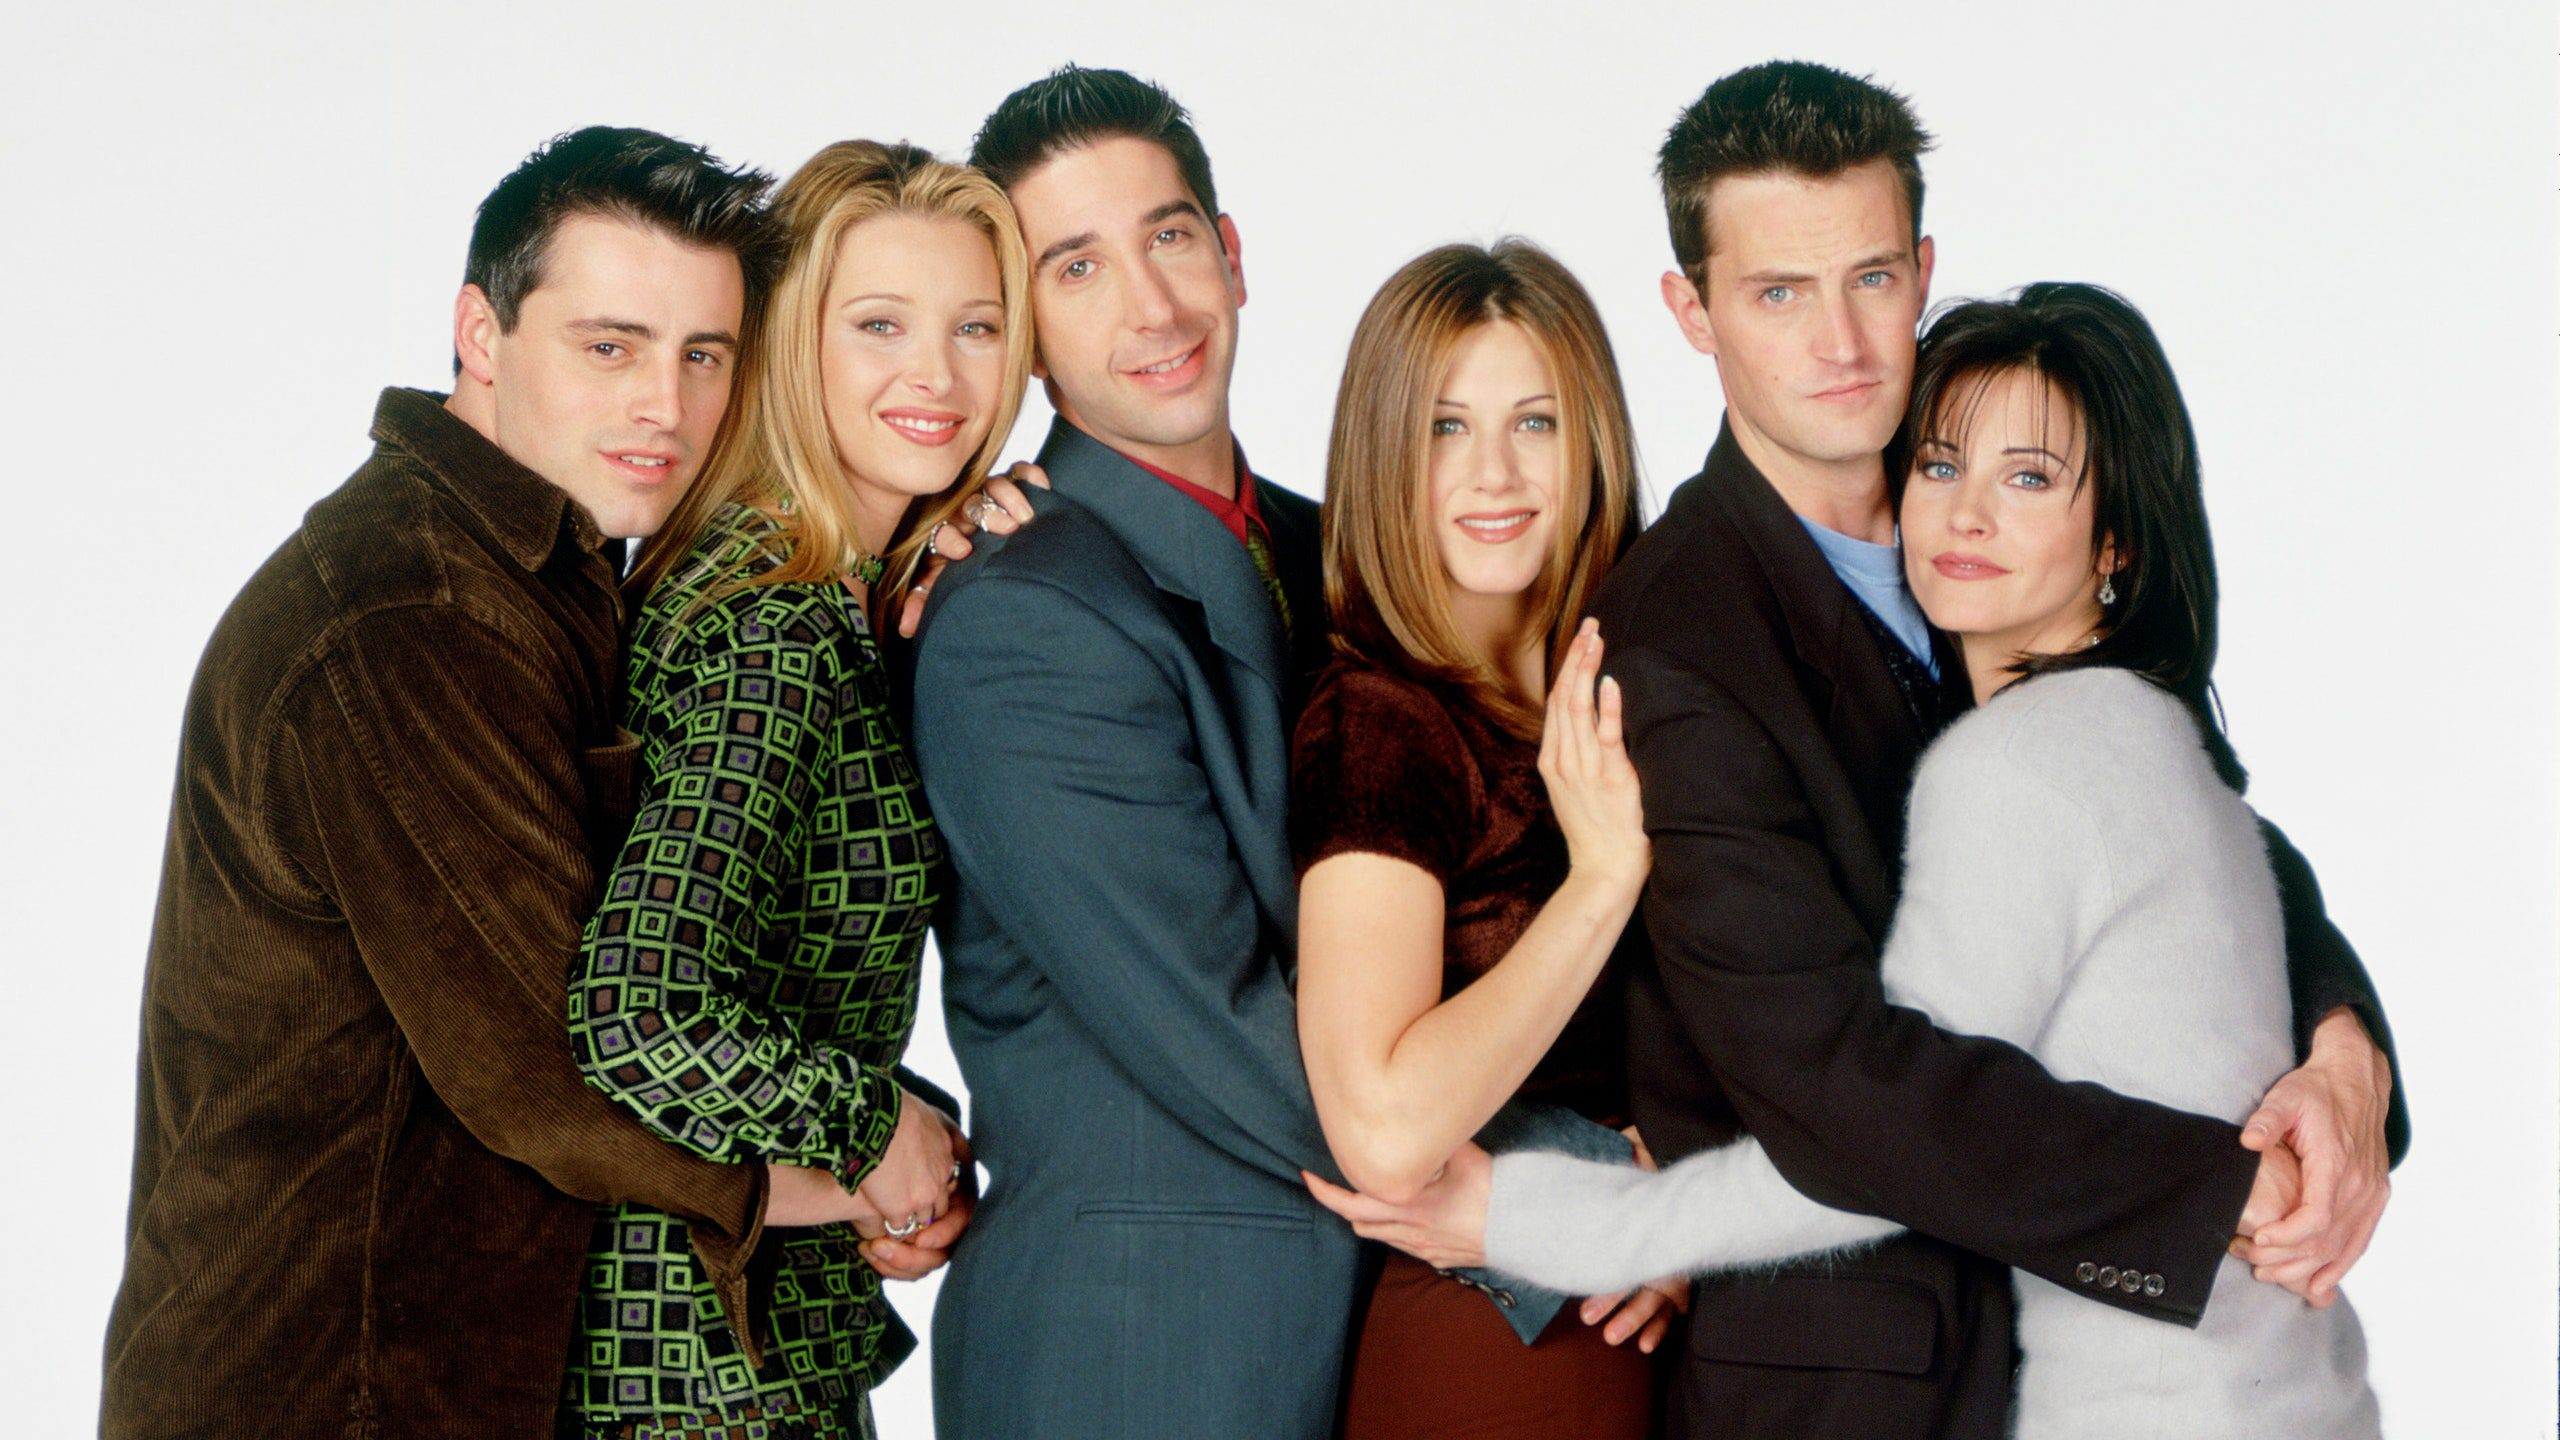 Friends Reunion TV Special — All 6 Members of the Friends Cast Are Coming  Back to TV   Teen Vogue